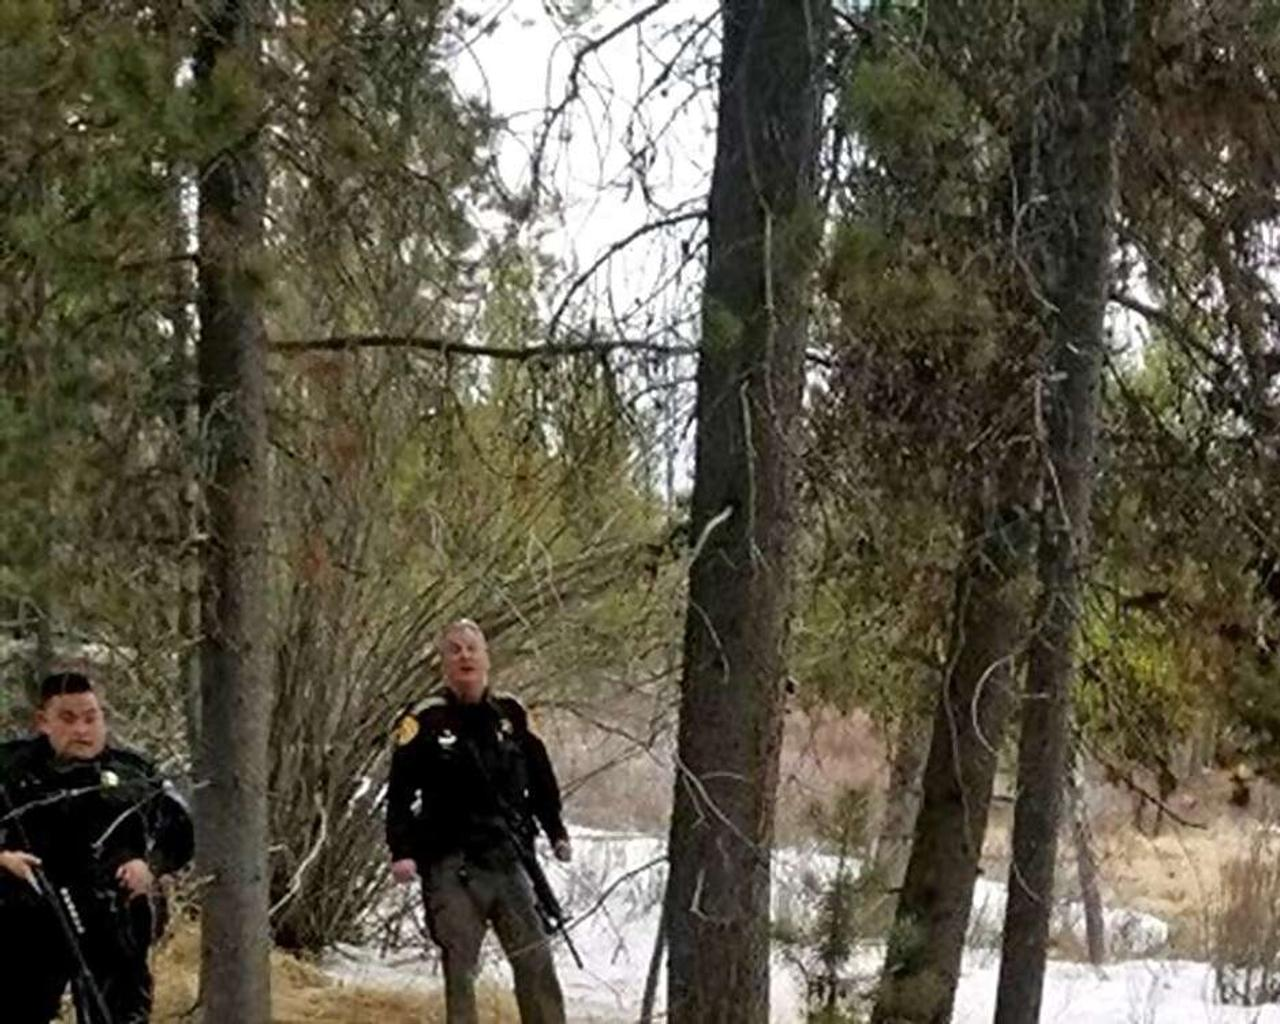 Arkansas man admits to cutting down trees in Mark Twain National Forest